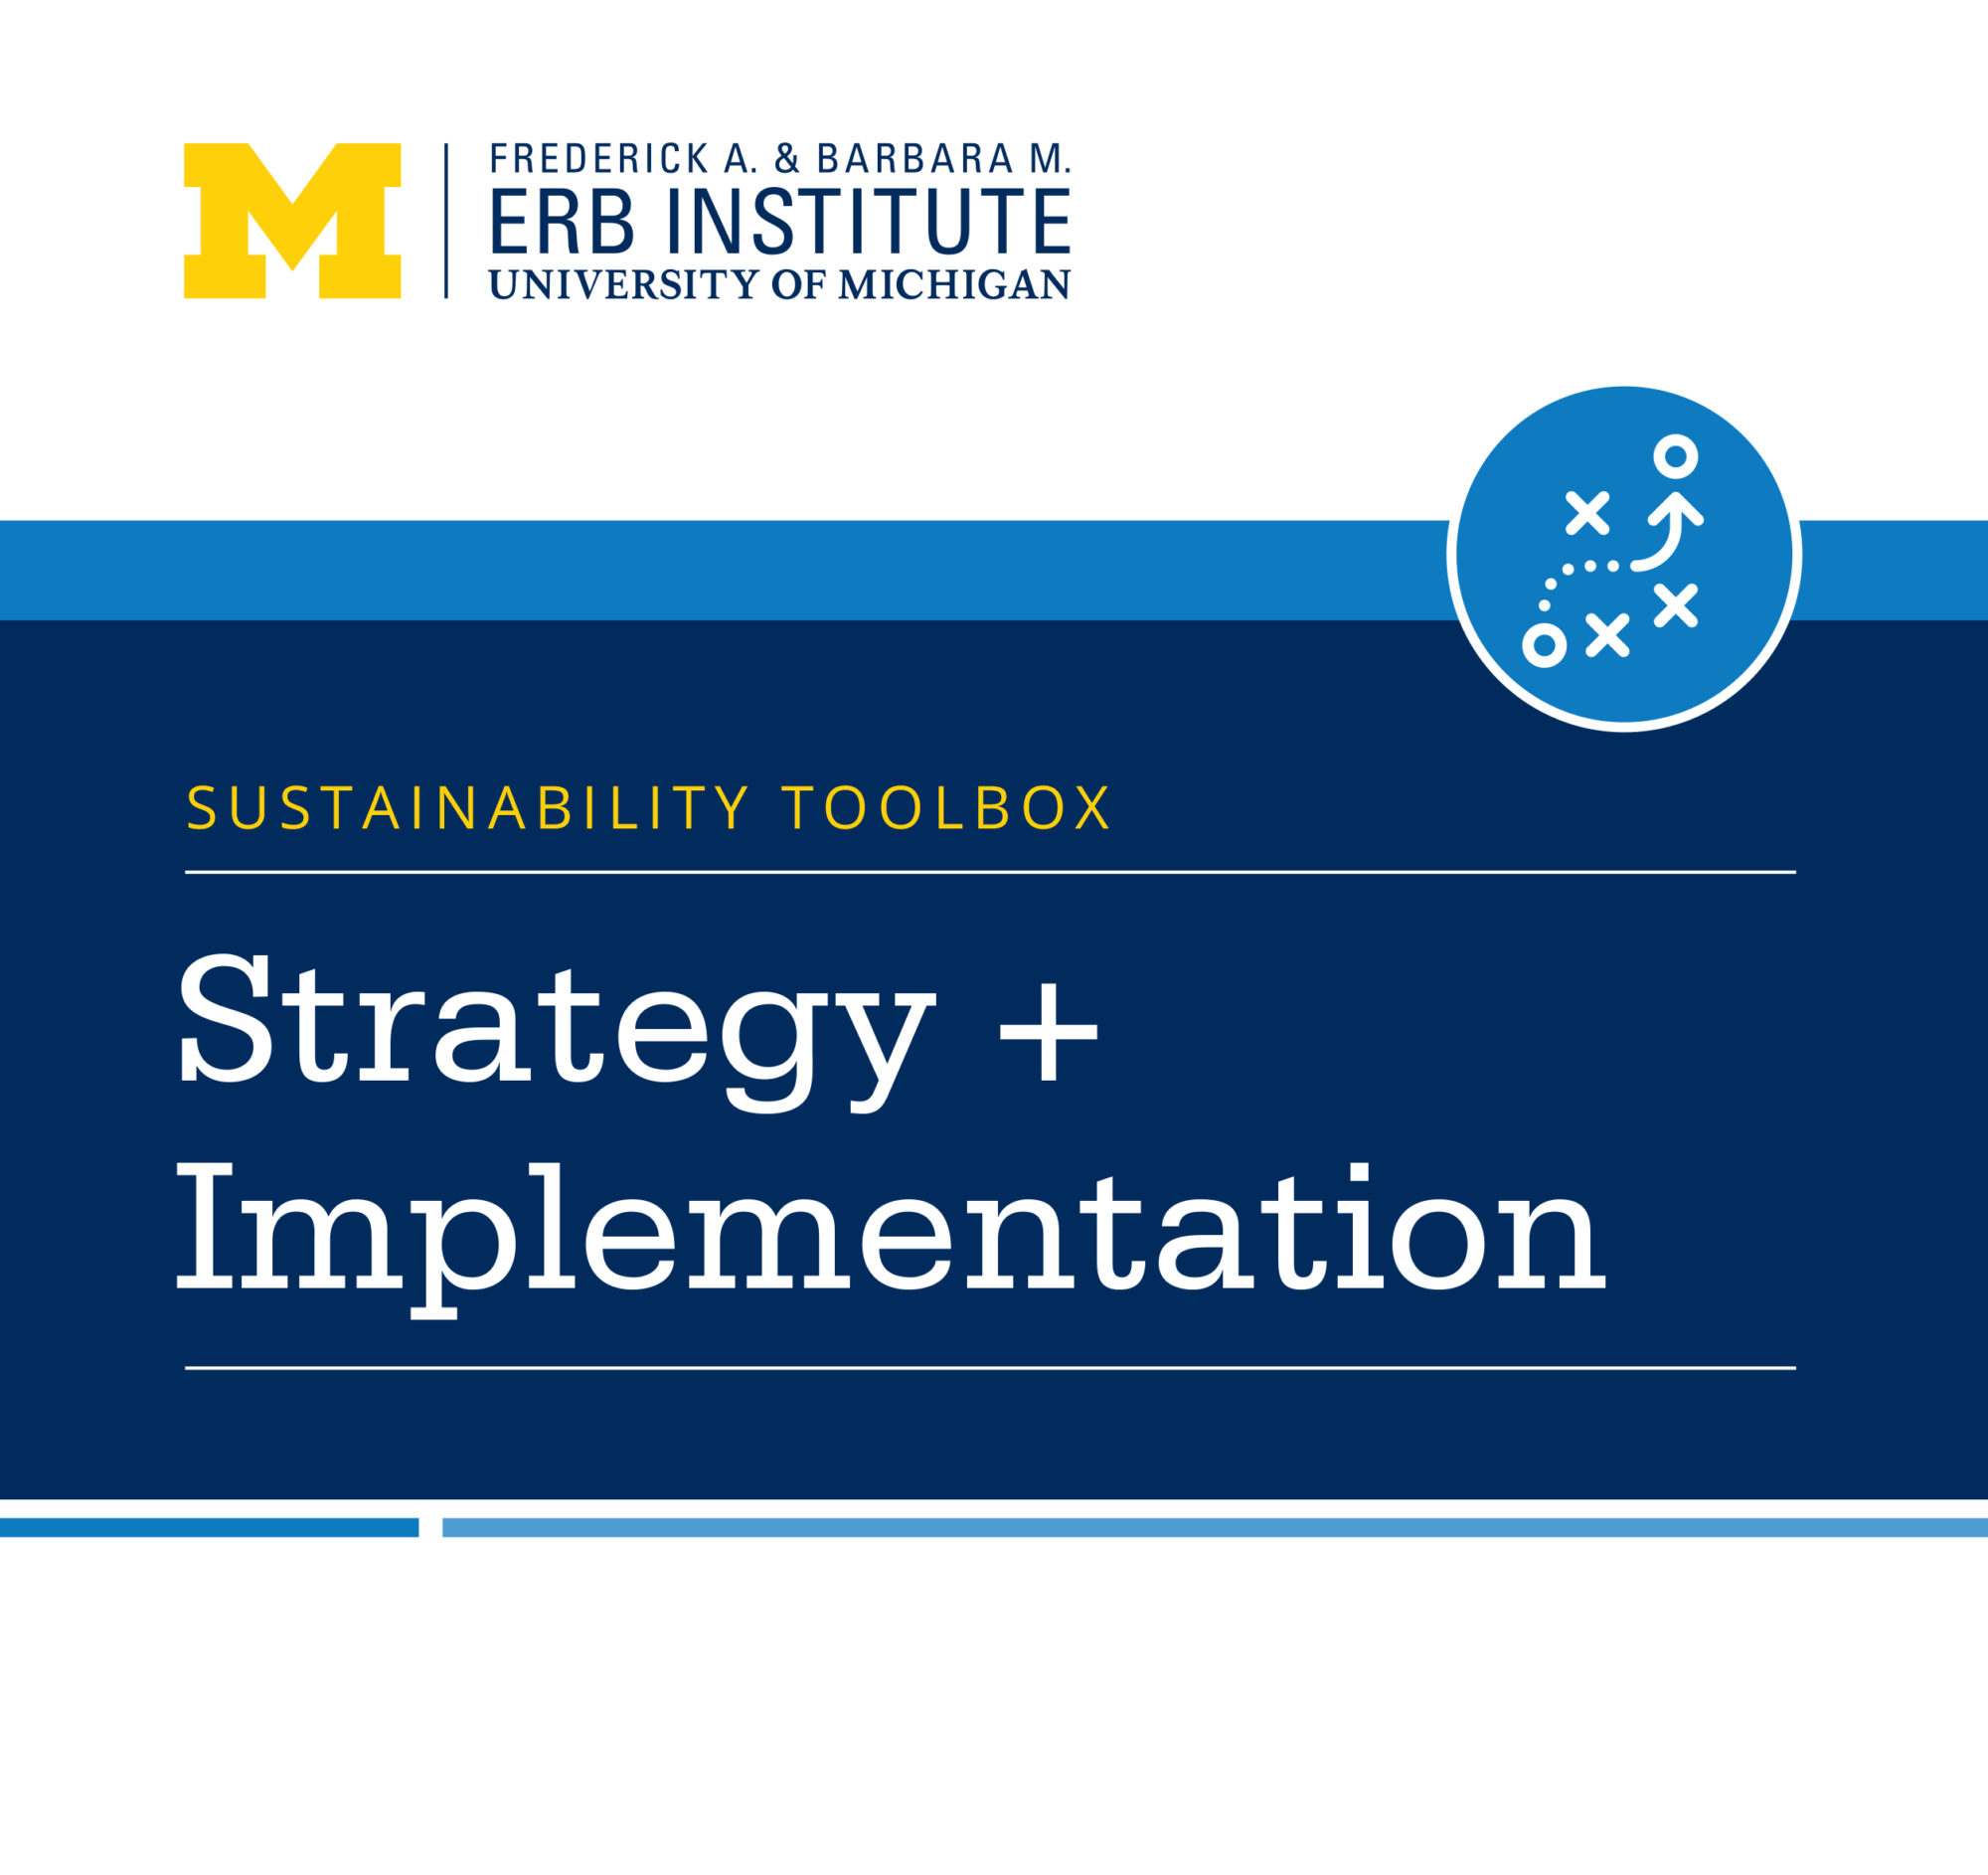 Sustainability Toolbox: Strategy + Implementation